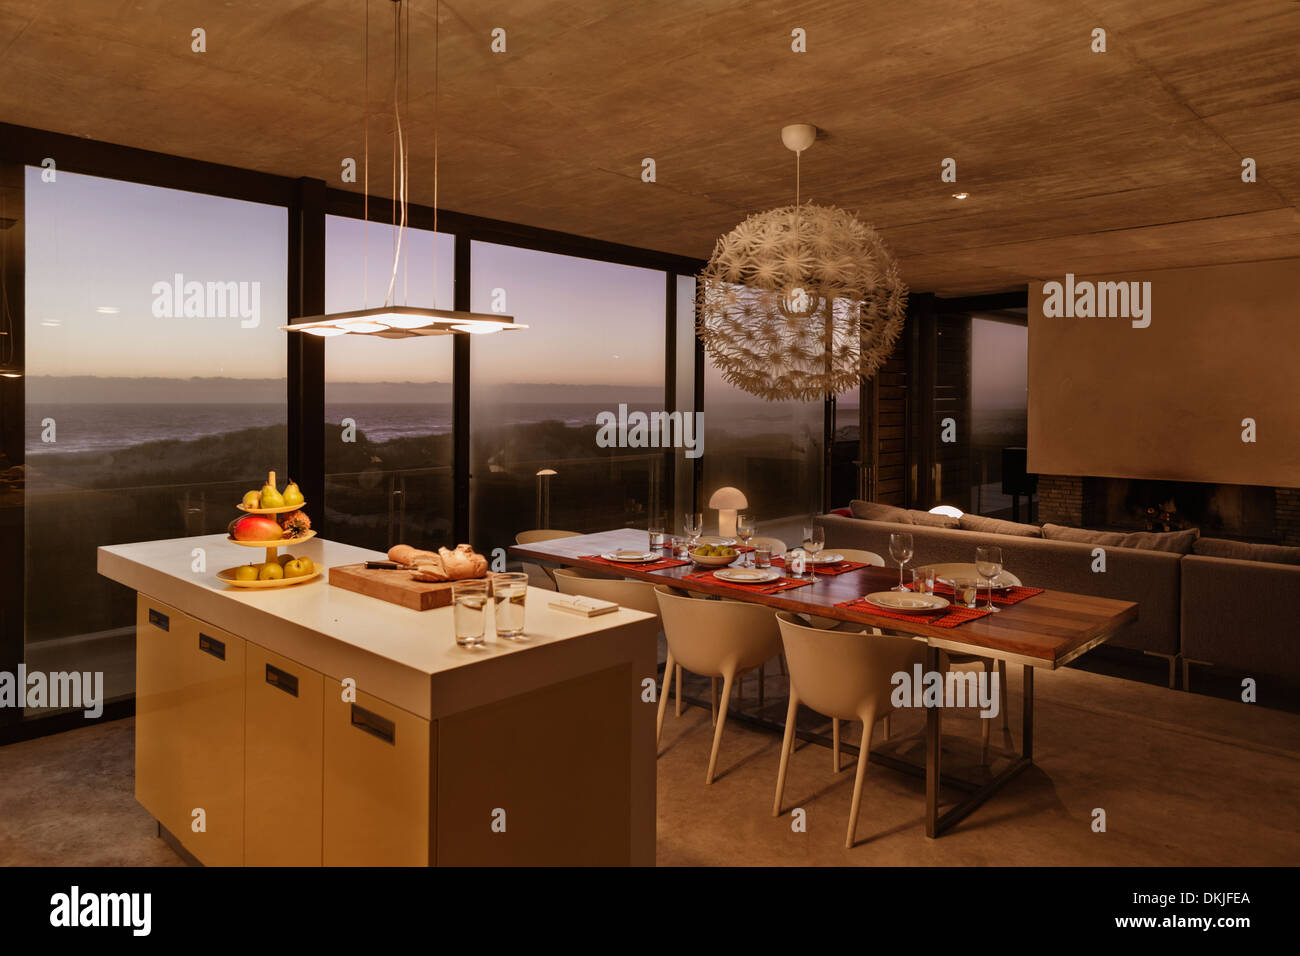 Breakfast Bar And Dining Table In Modern Kitchen Overlooking Ocean At Dusk